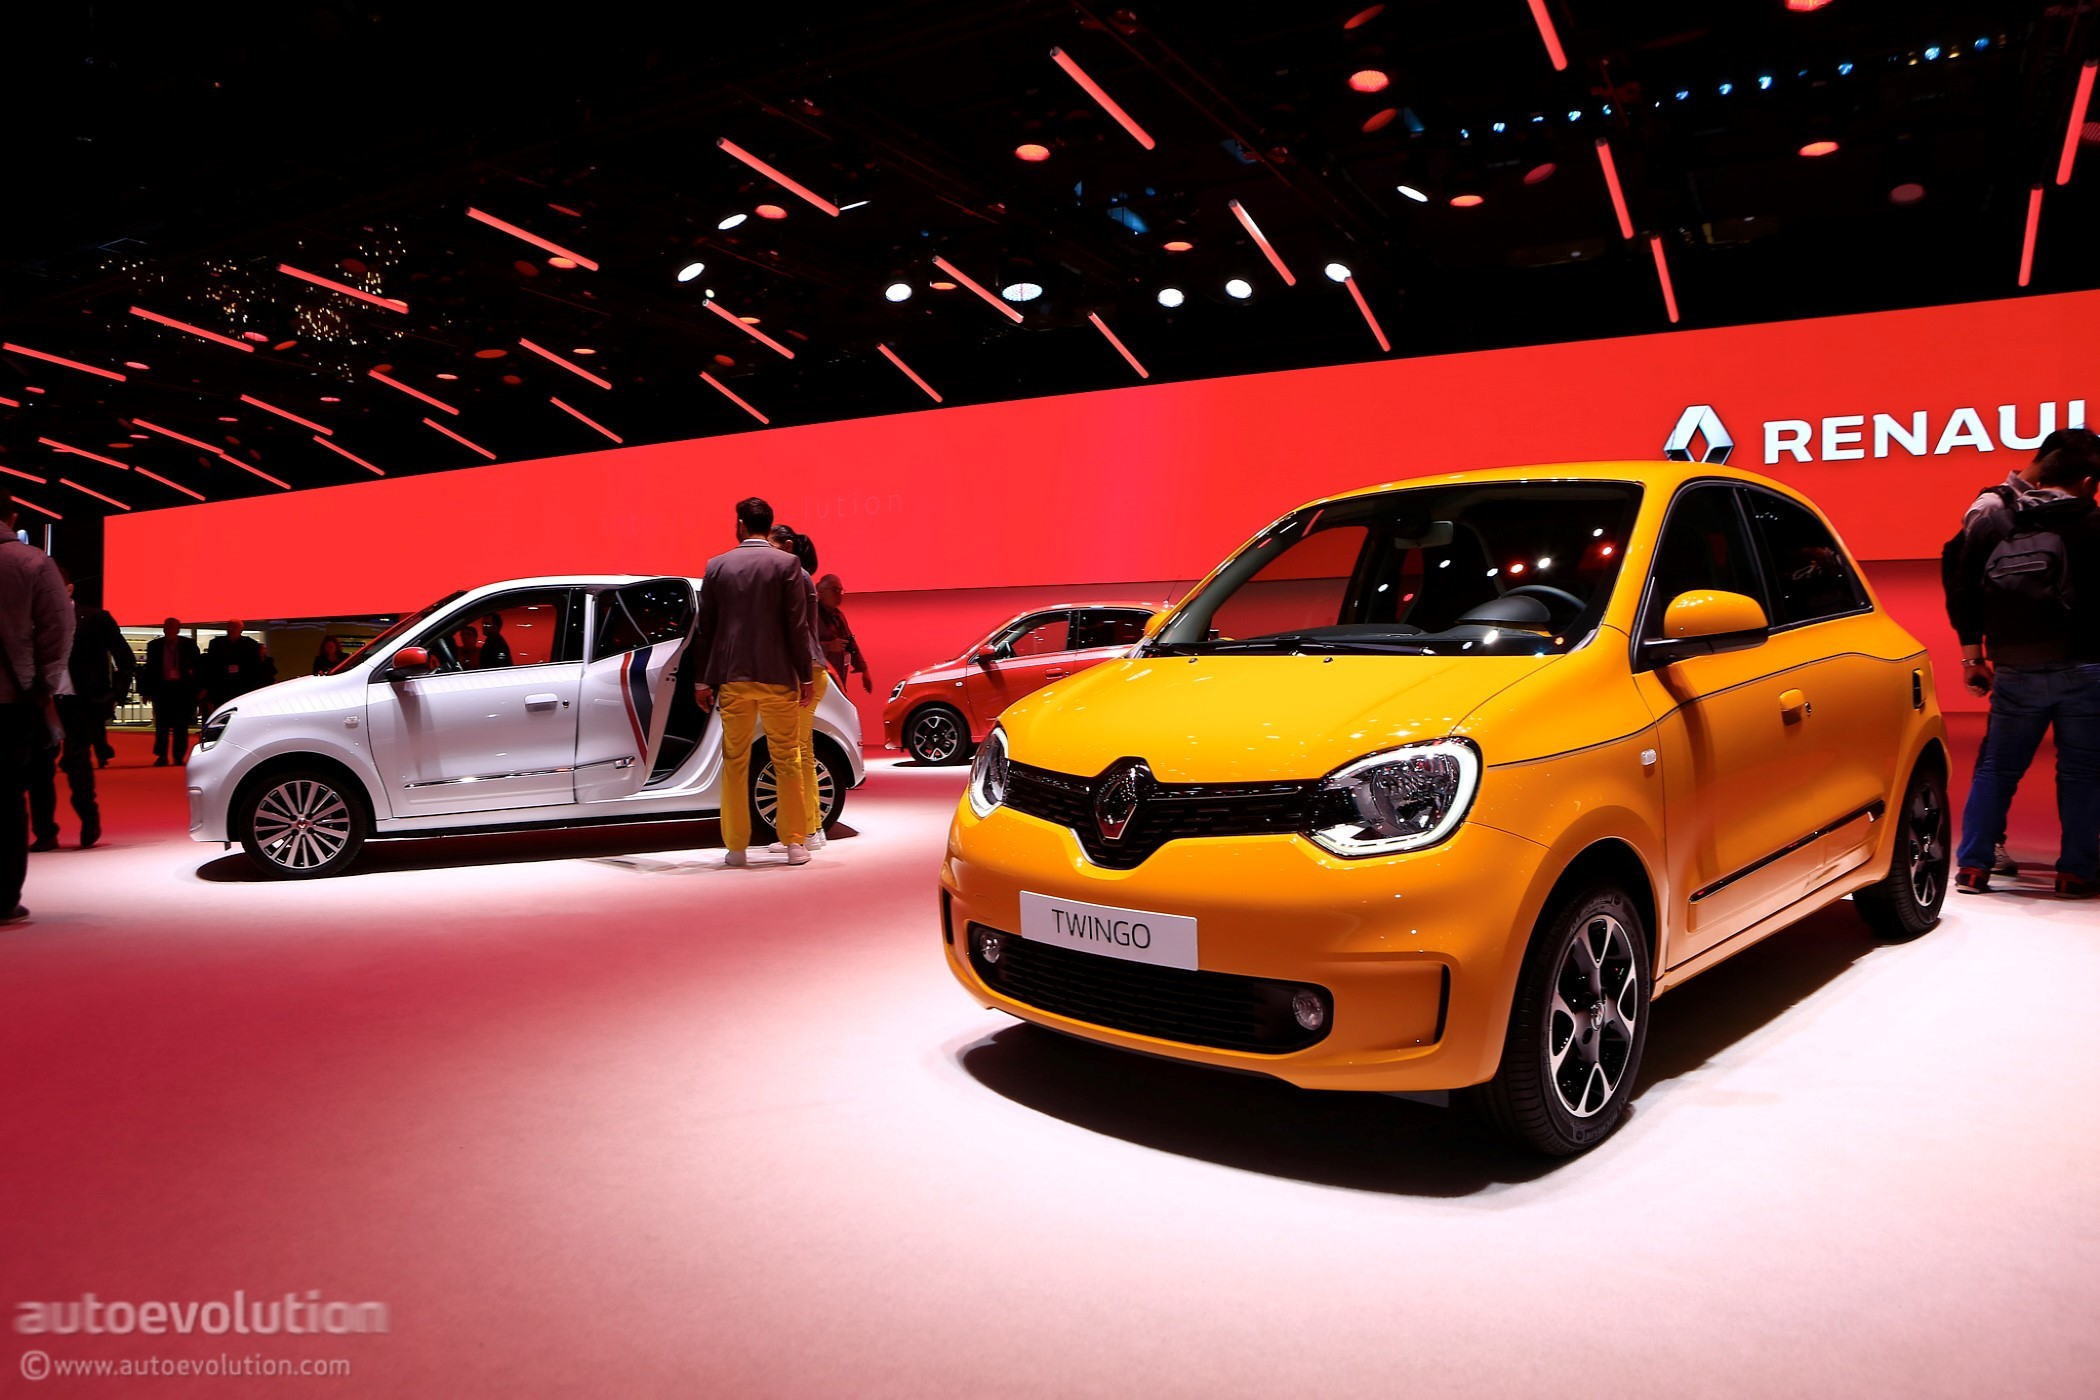 Lithuanian Company Gives First Renault Twingo New Purpose as